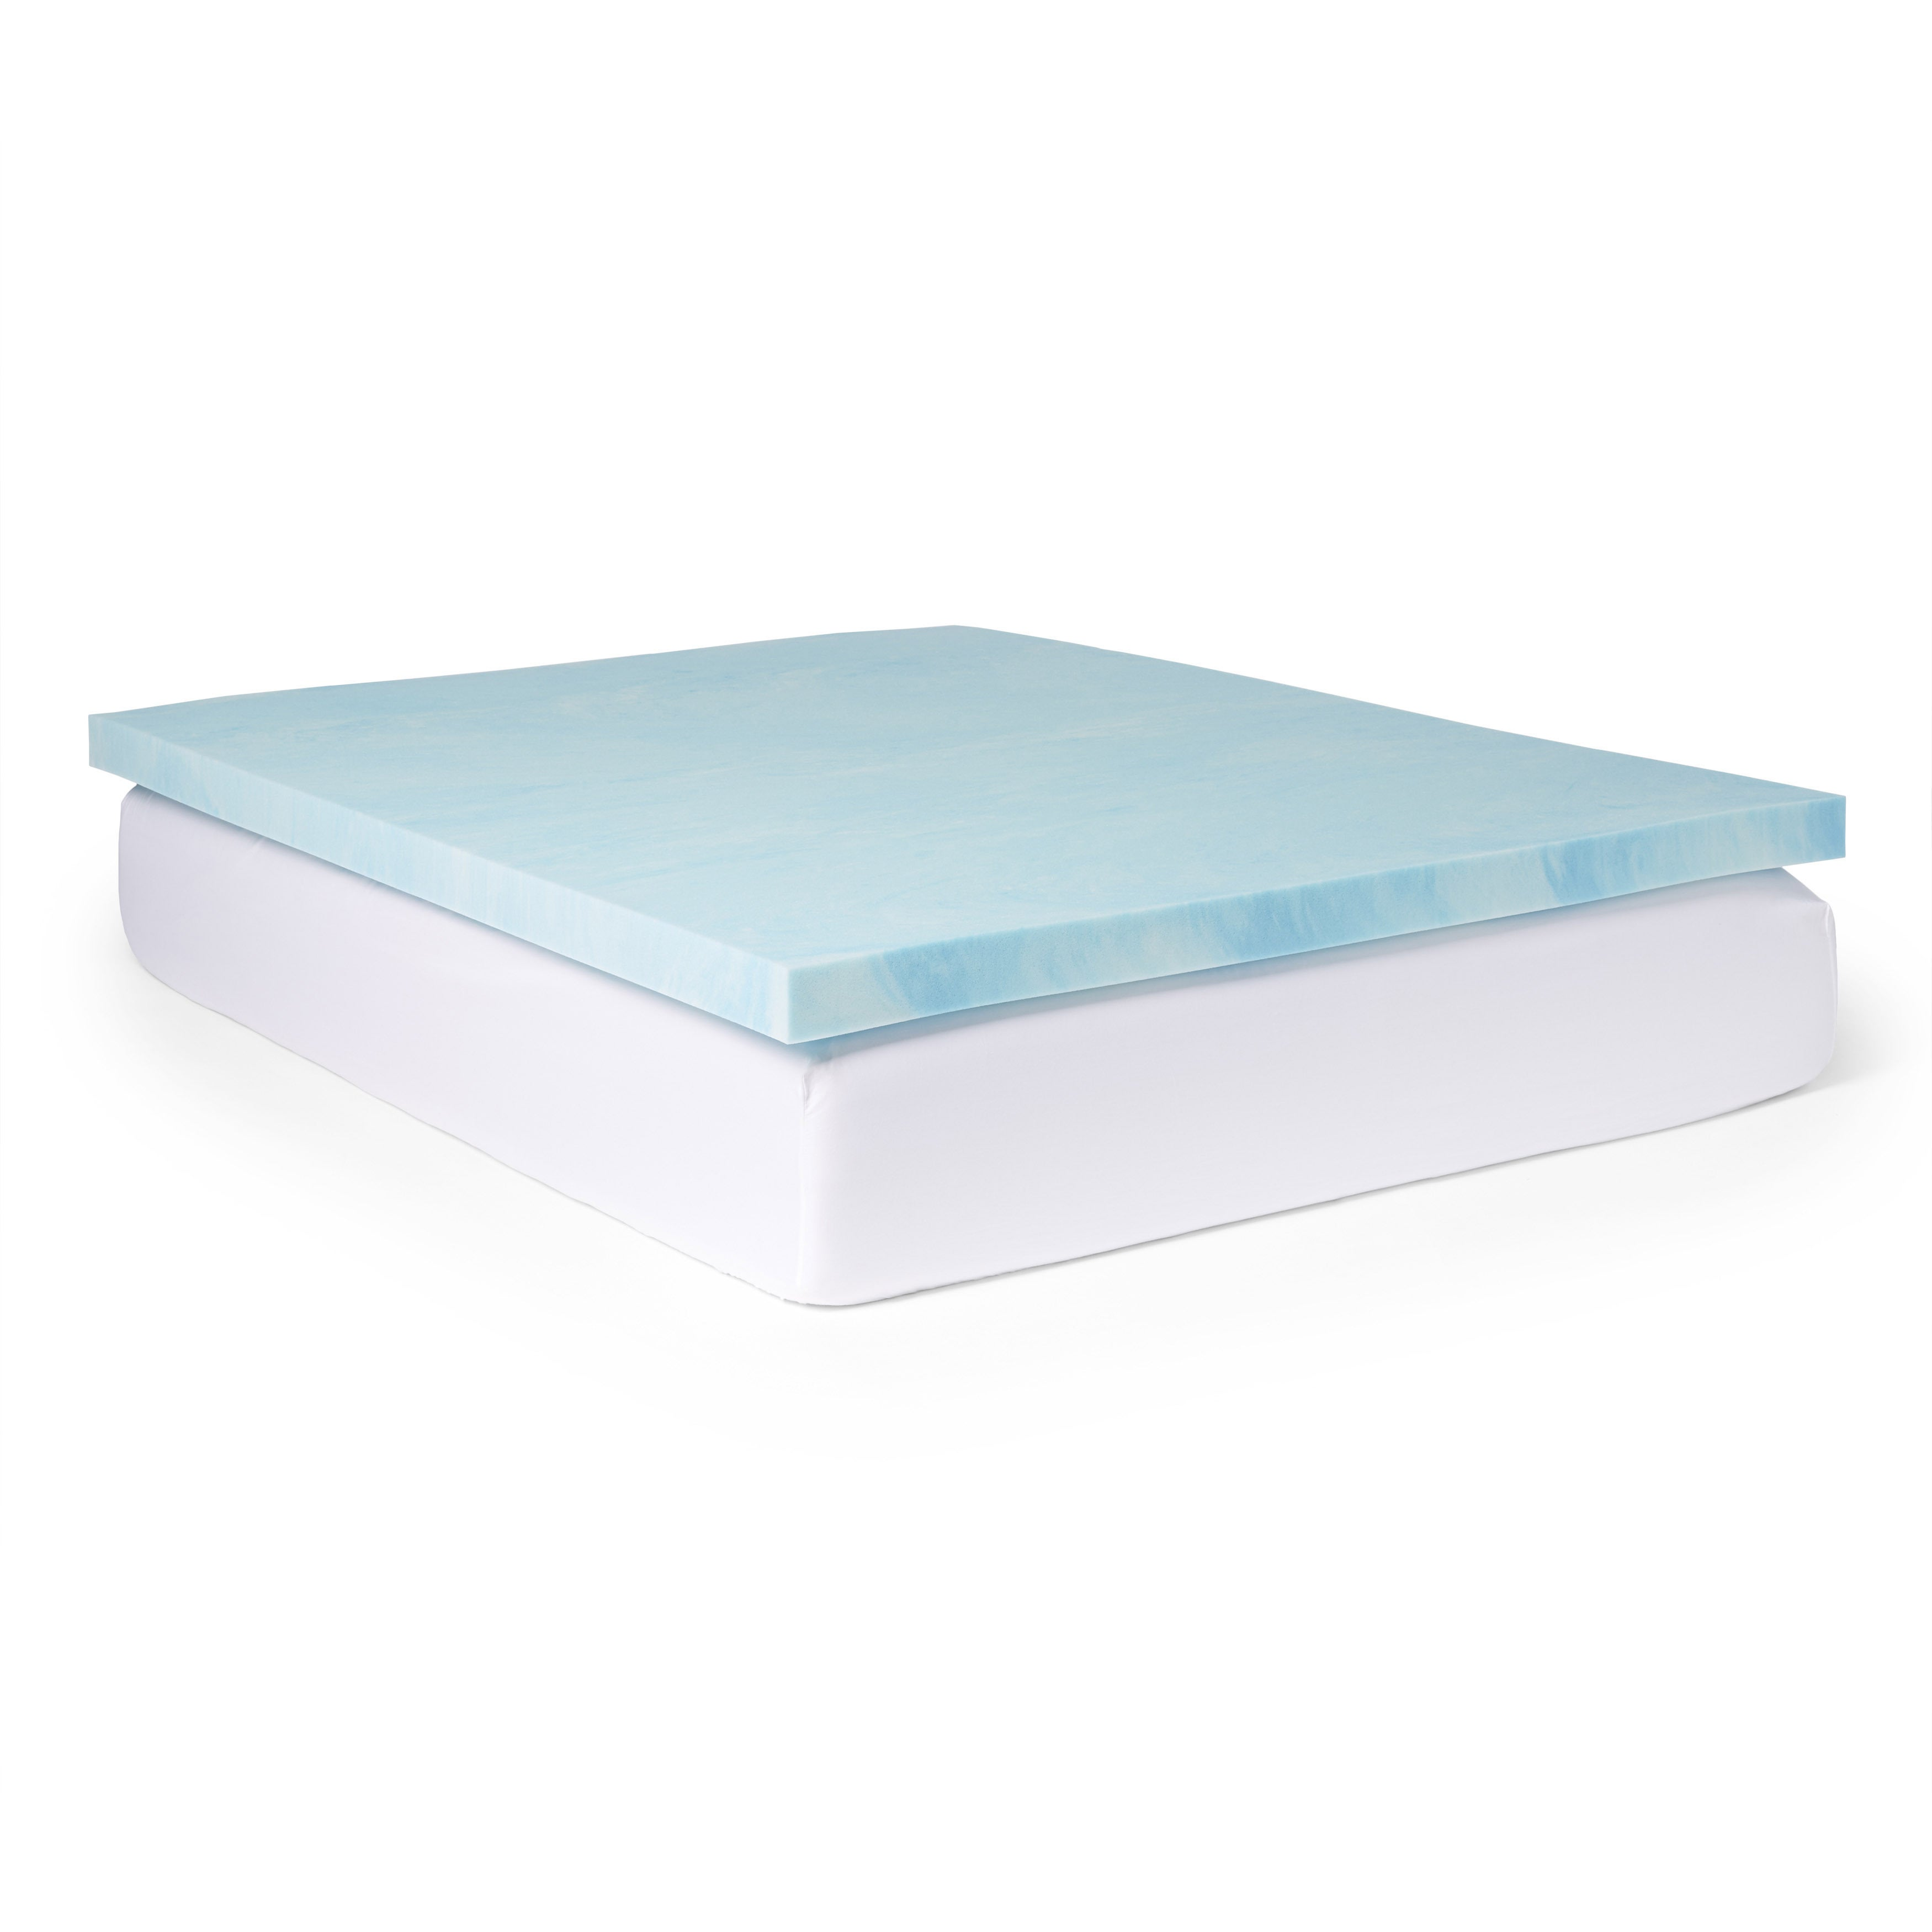 bedding free overstock slumber memory shipping bath product fiber foam today inch and mattress solutions topper